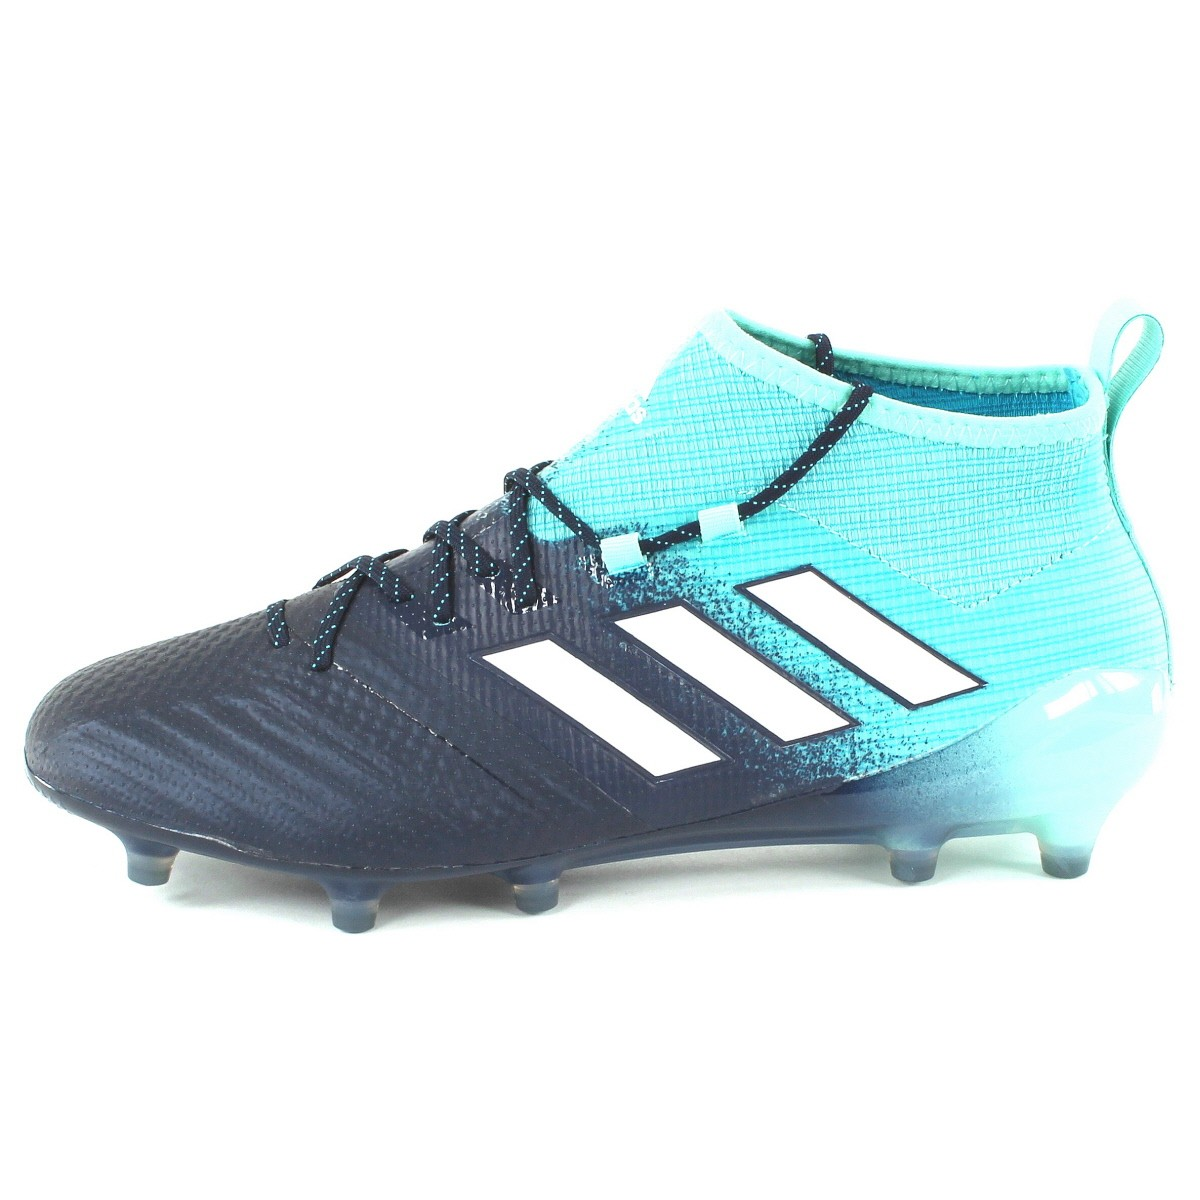 ADIDAS PERFORMANCE Chaussures de football Ace 17.1 FG - Homme ...